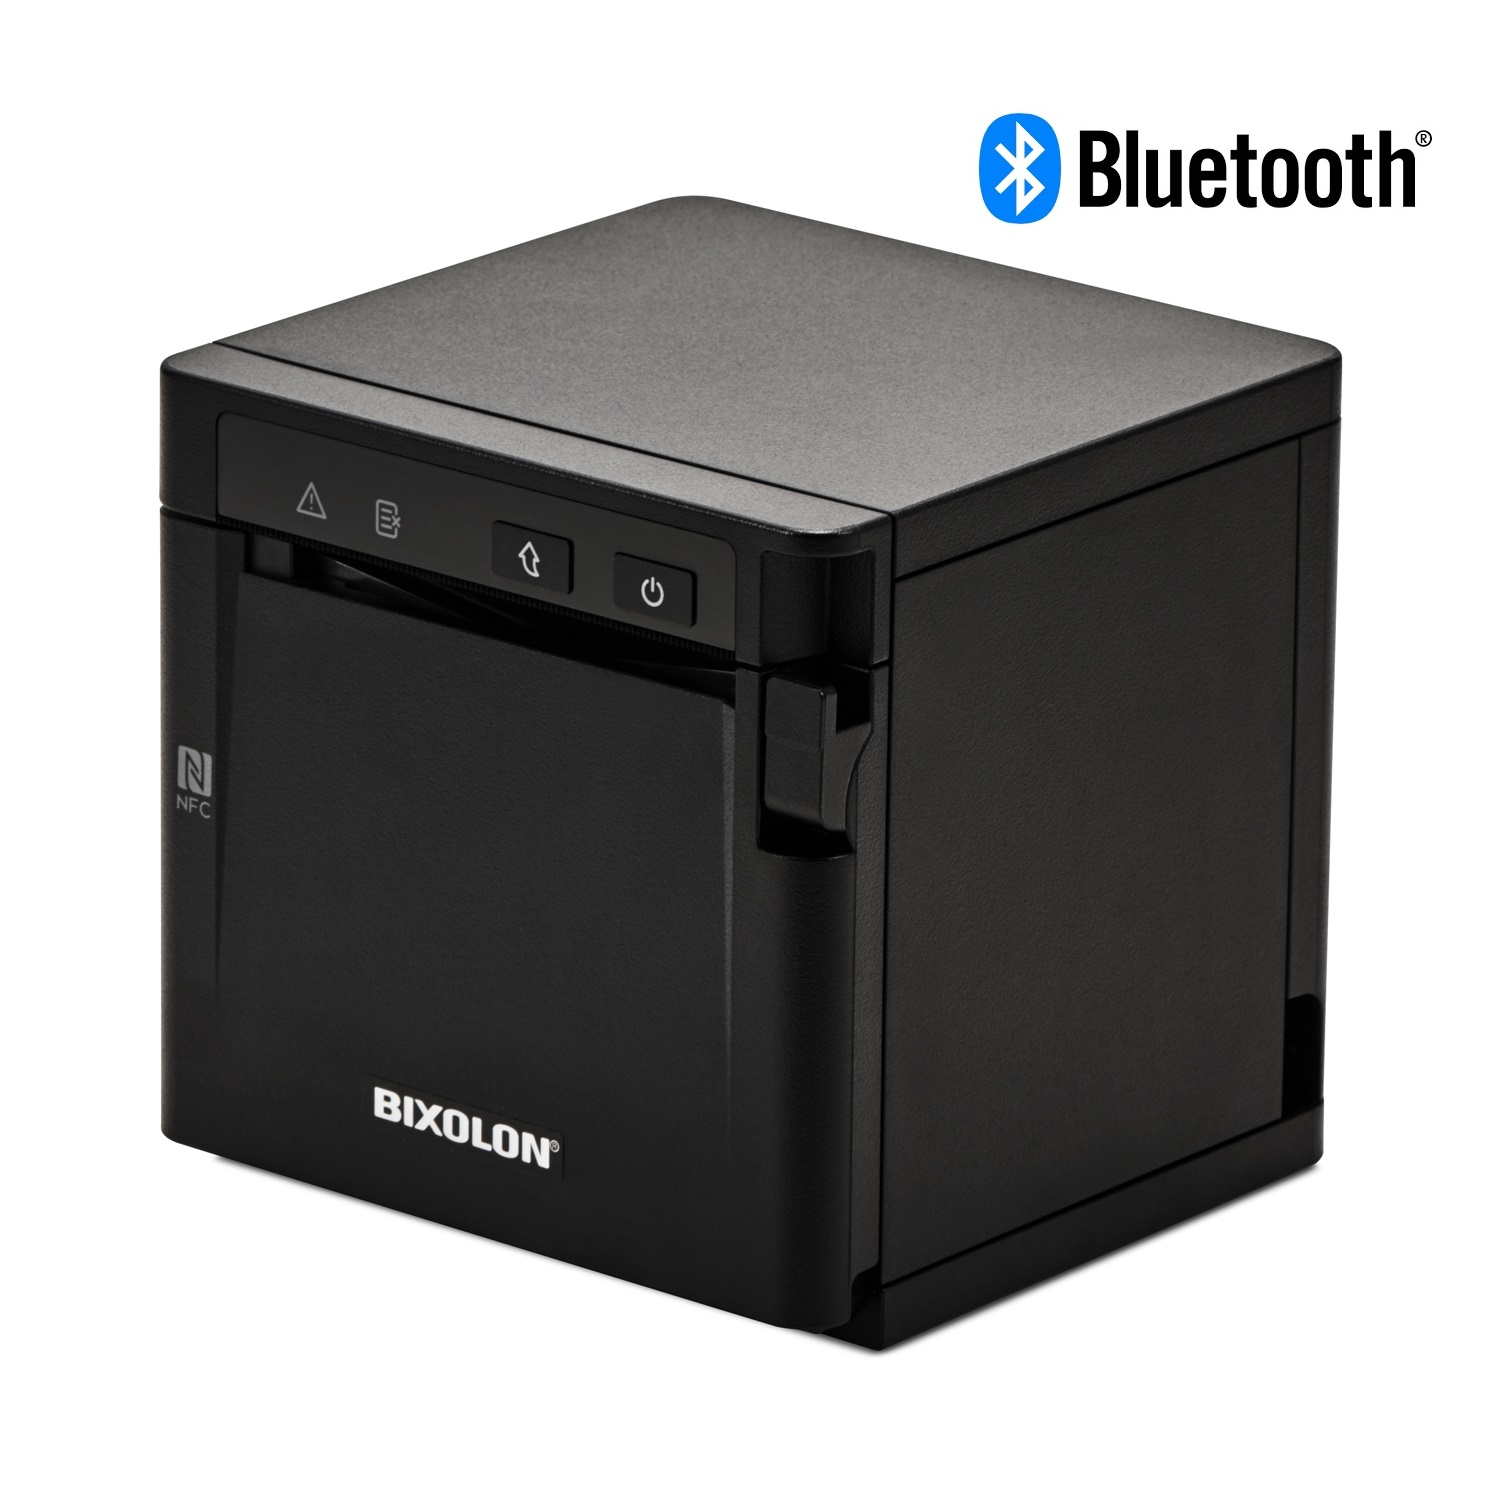 Bixolon SRP-Q300 Bluetooth Receipt Printer